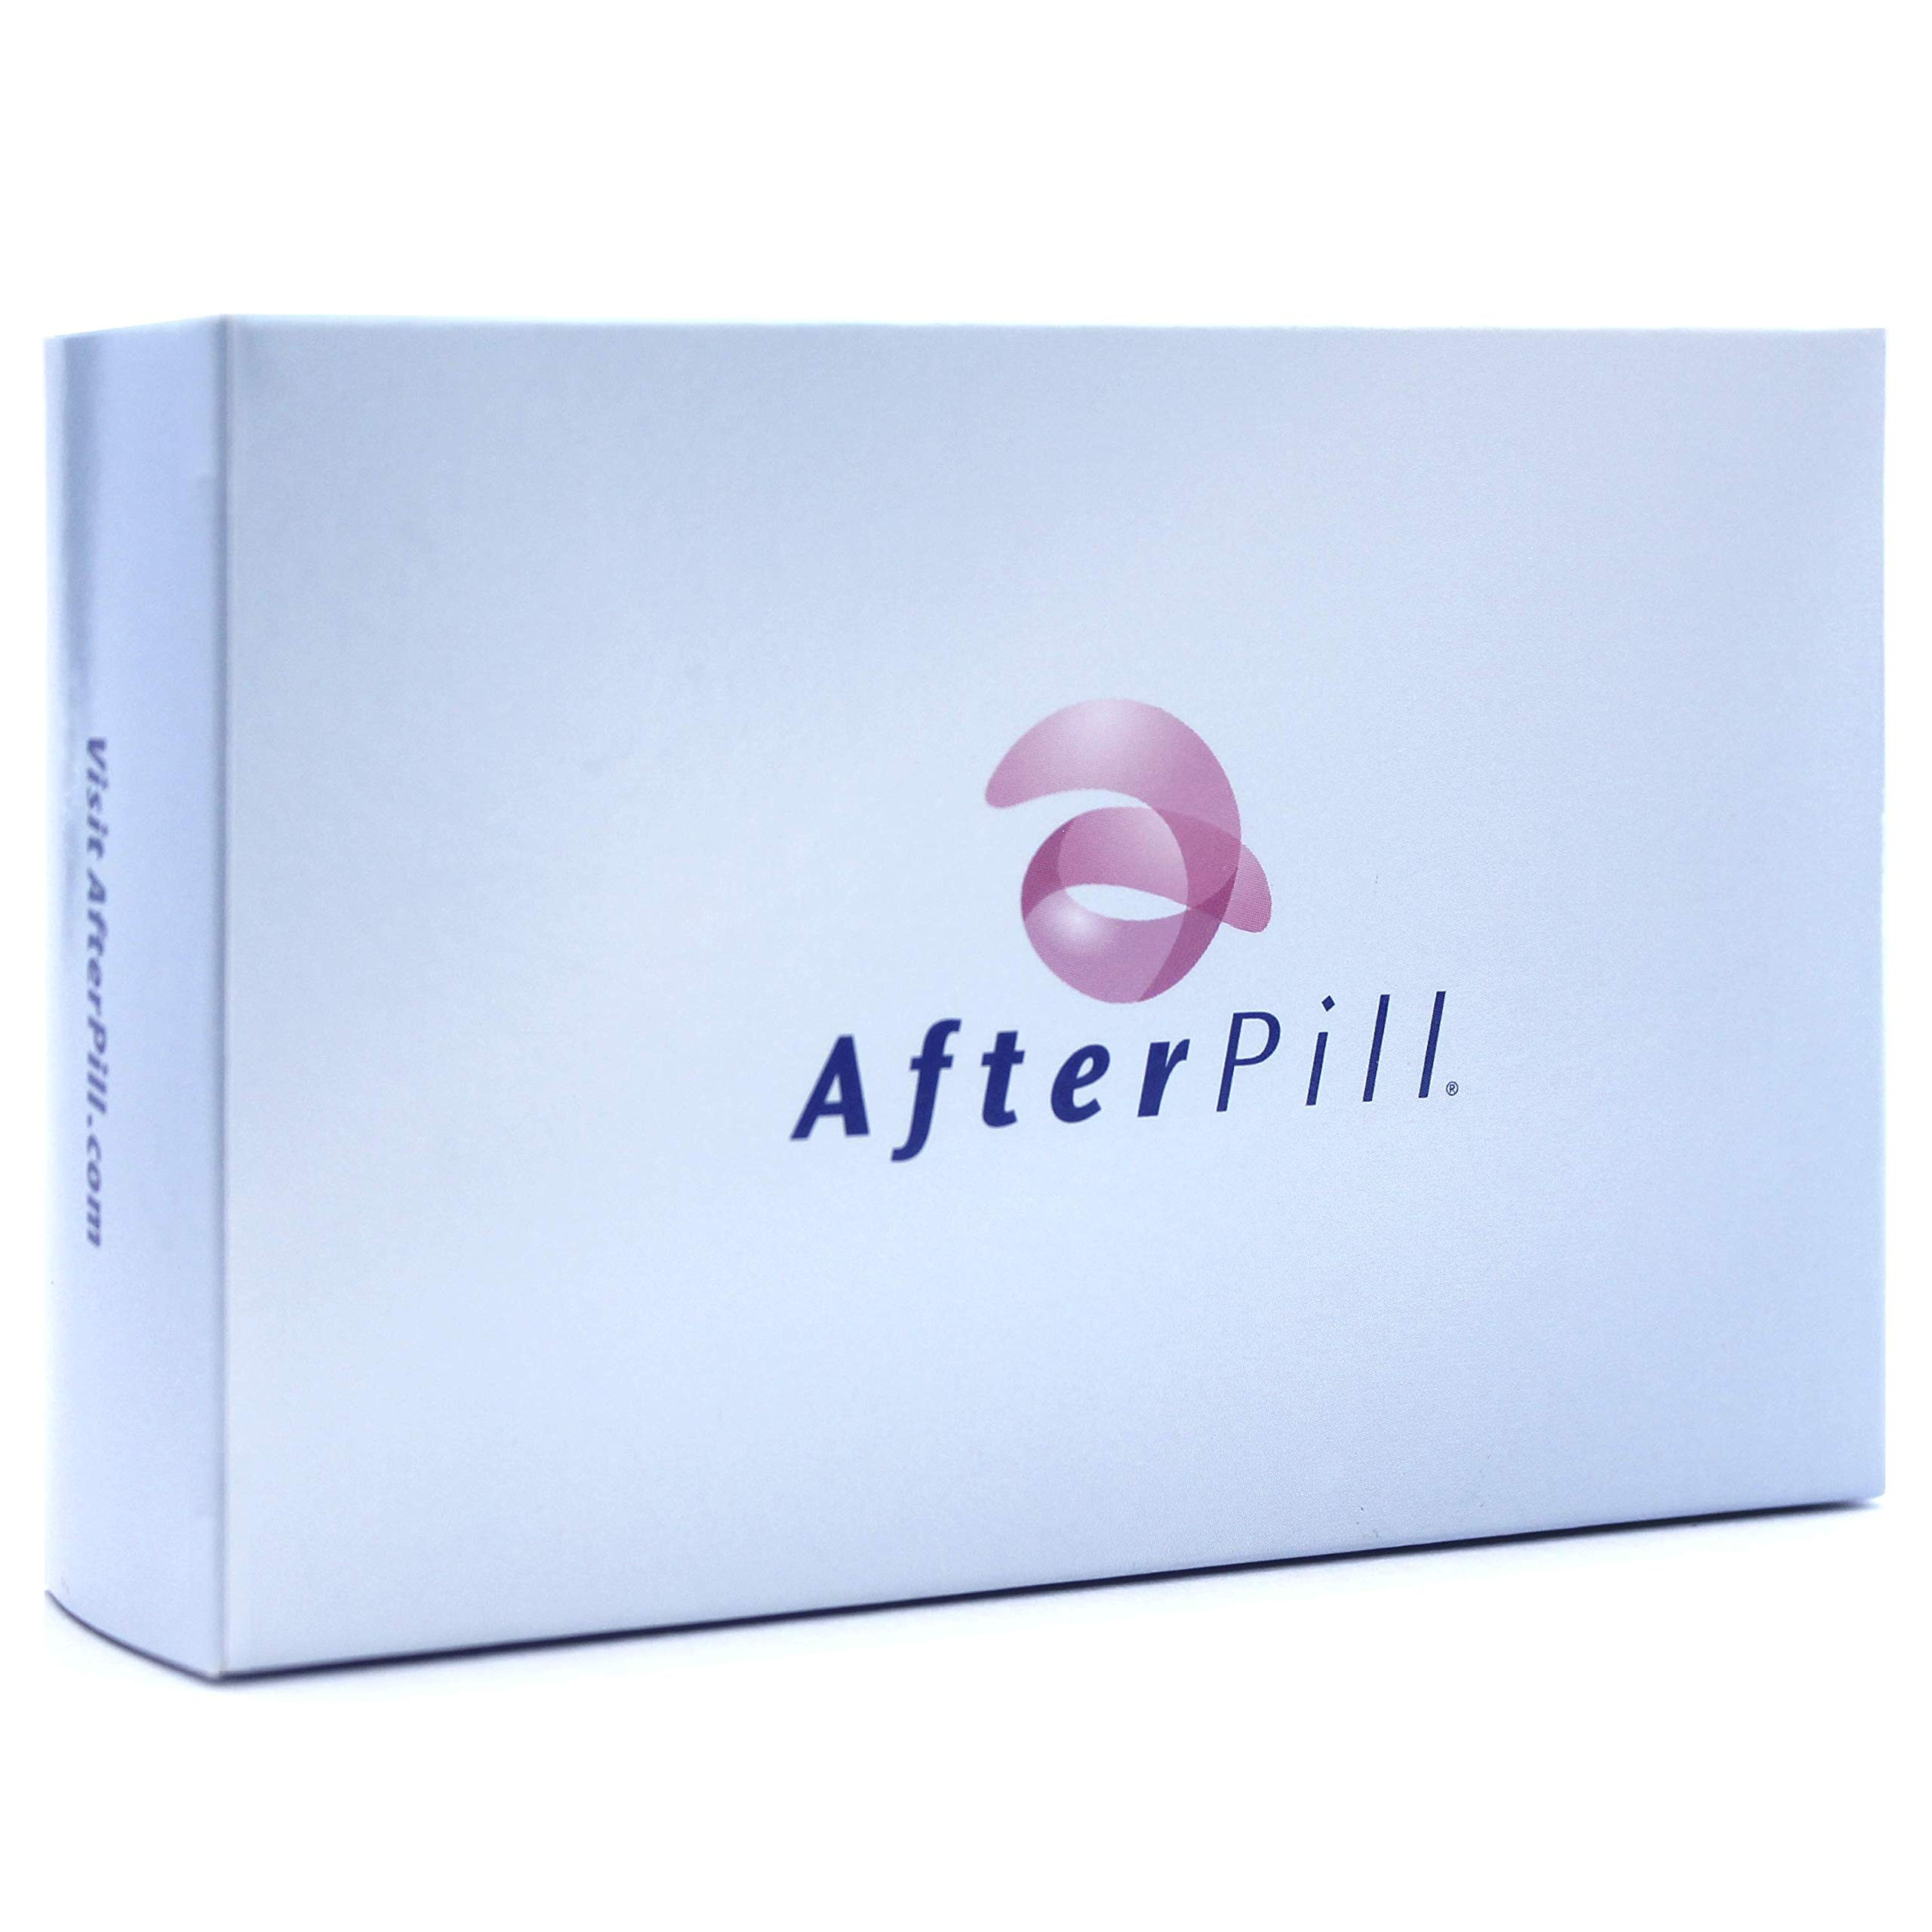 AfterPill Emergency Contraceptive Pill, 1 Unit by AfterPill